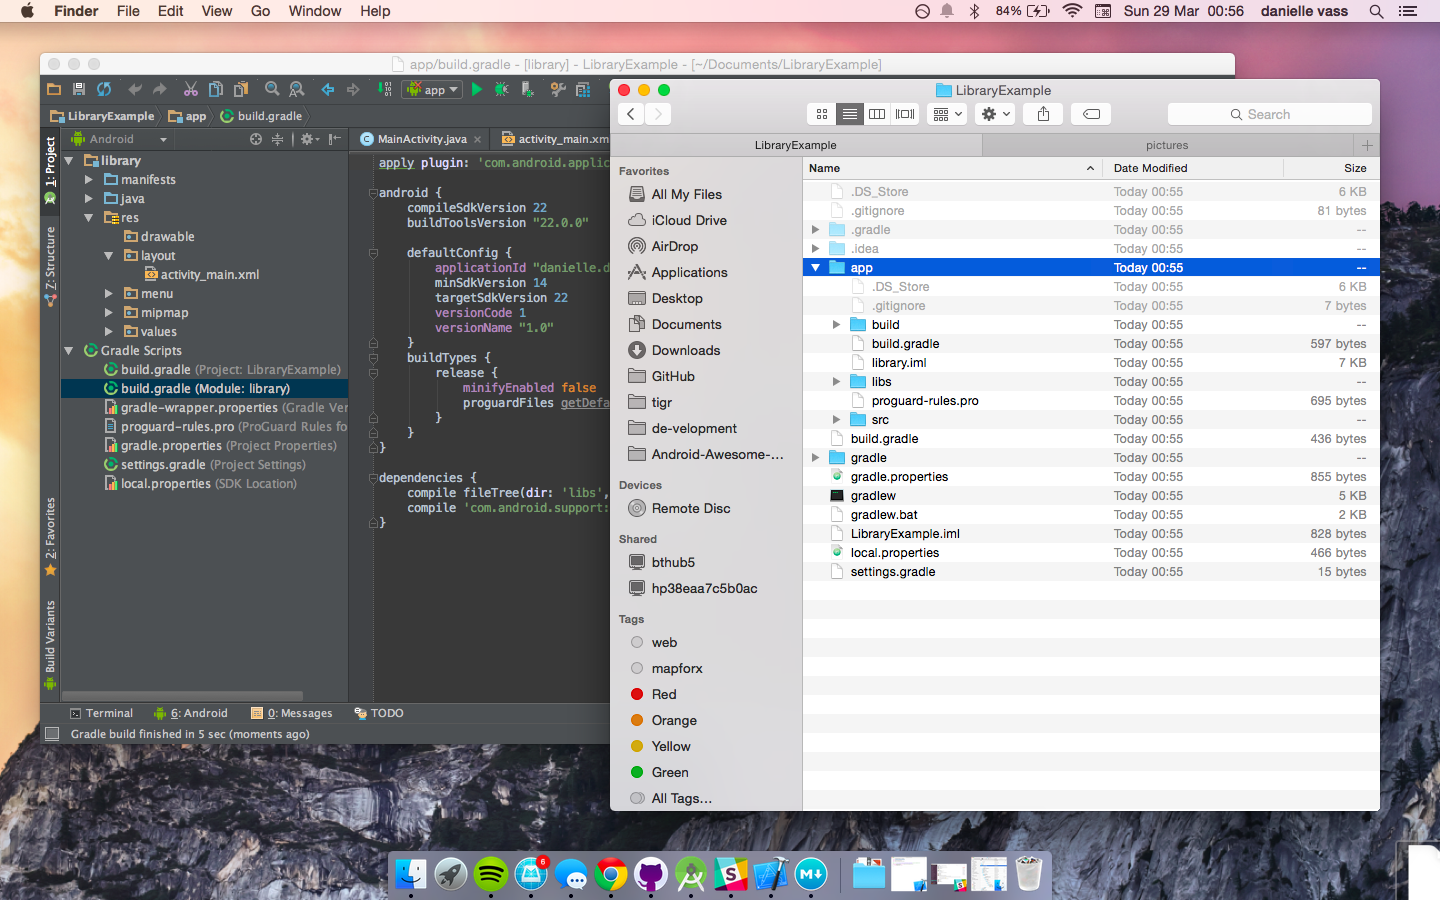 Android Studio calls my module library, but Finder still says app!